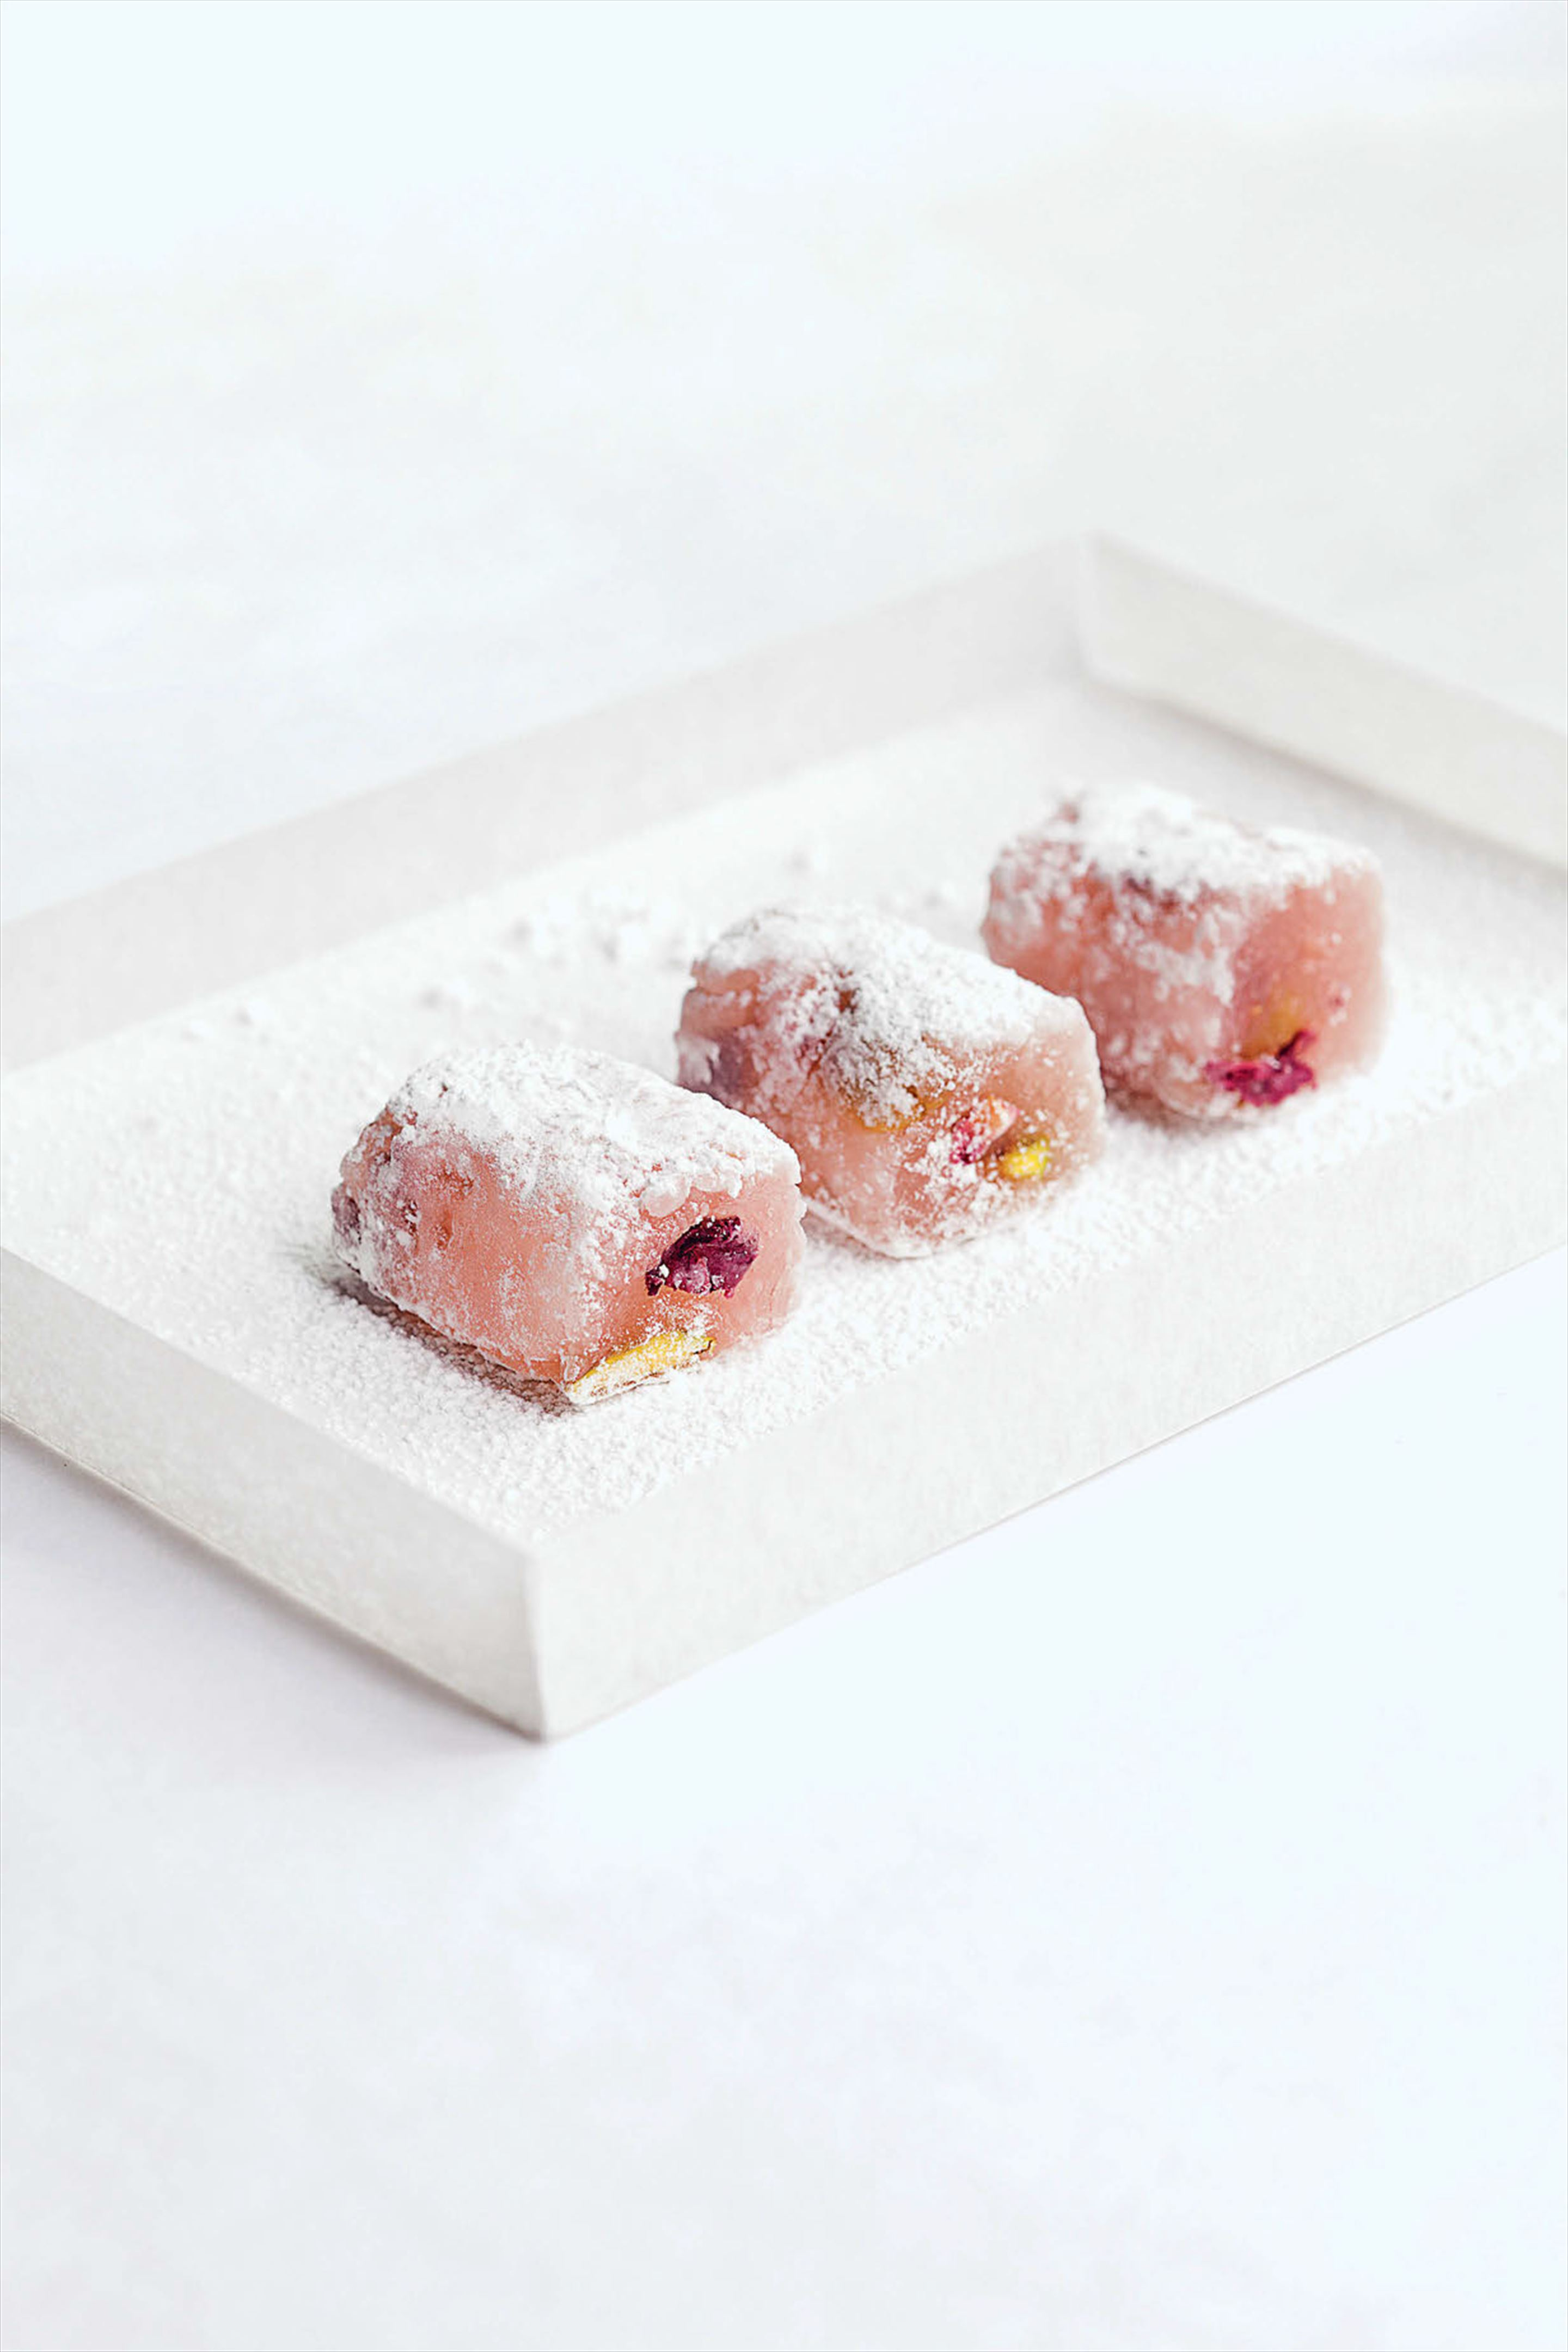 Rose petal and pistachio Turkish delight